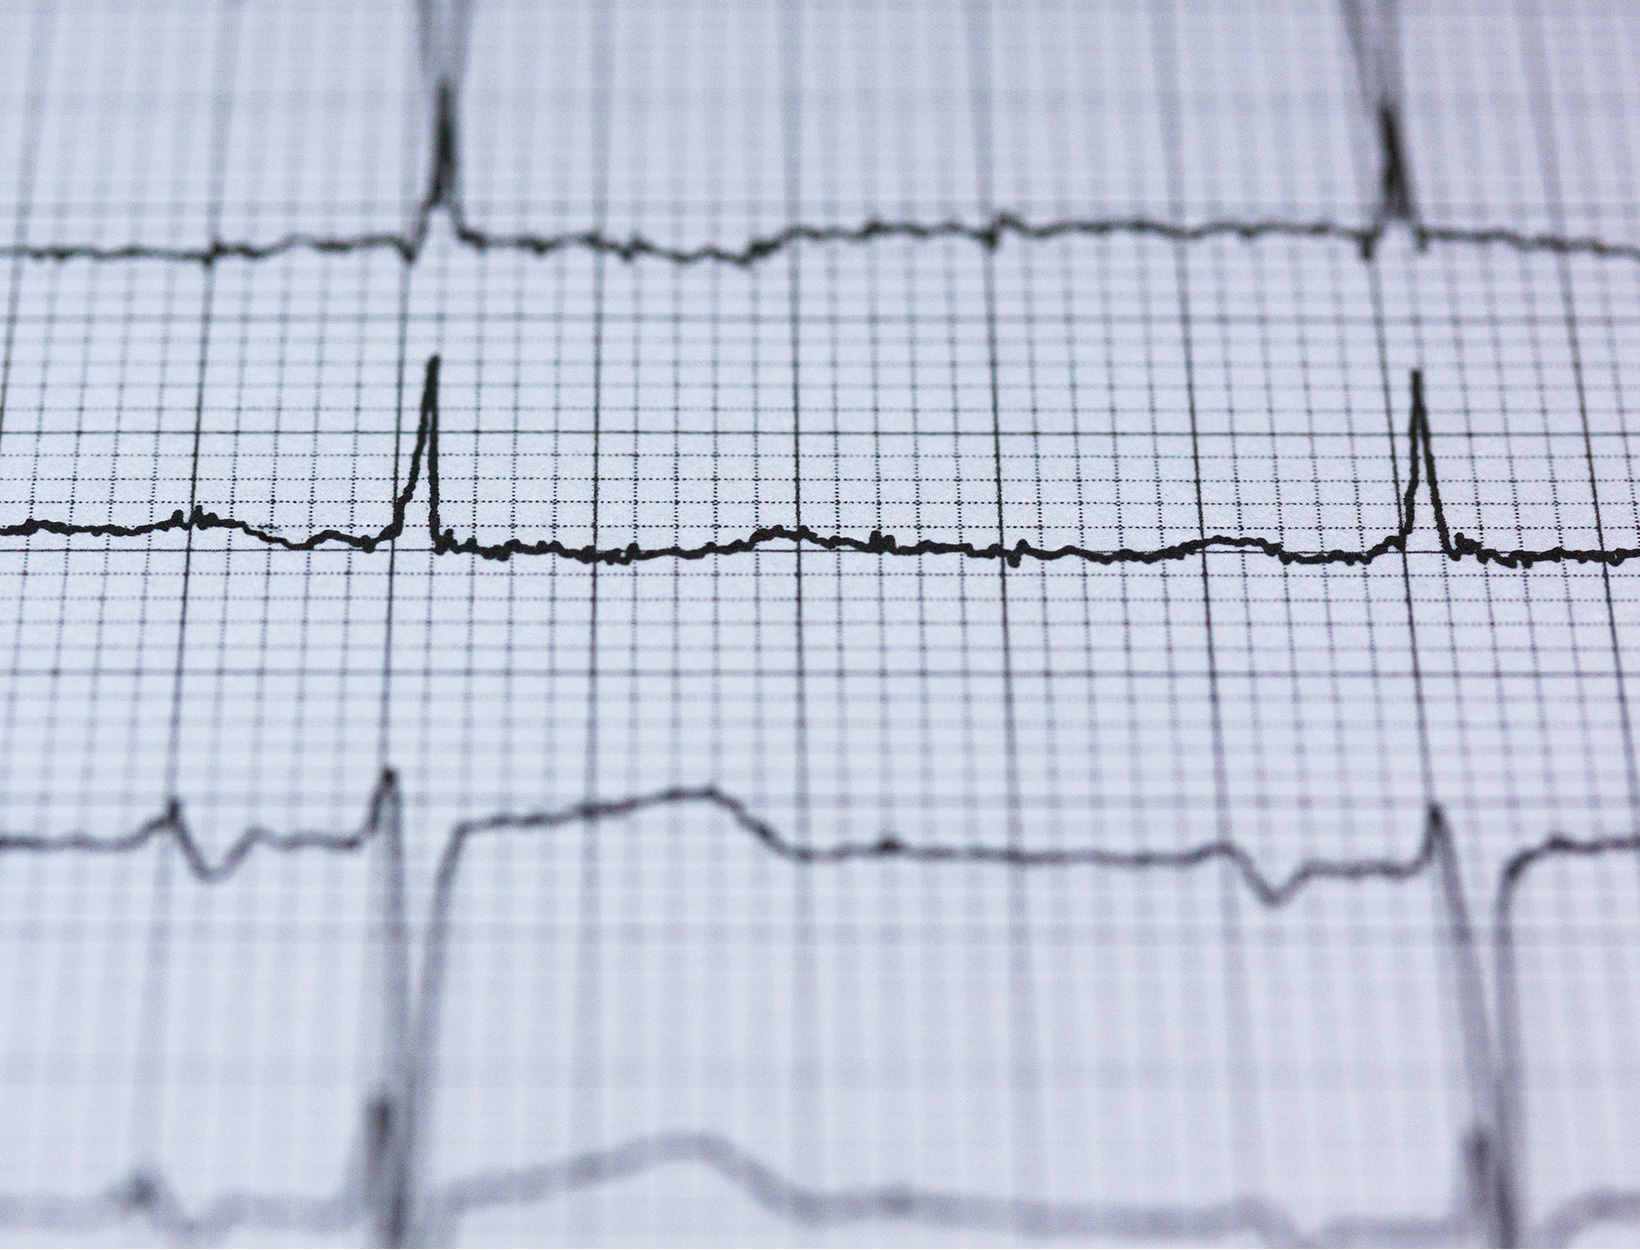 Scientists Discover a Bone-Deep Risk for Heart Disease